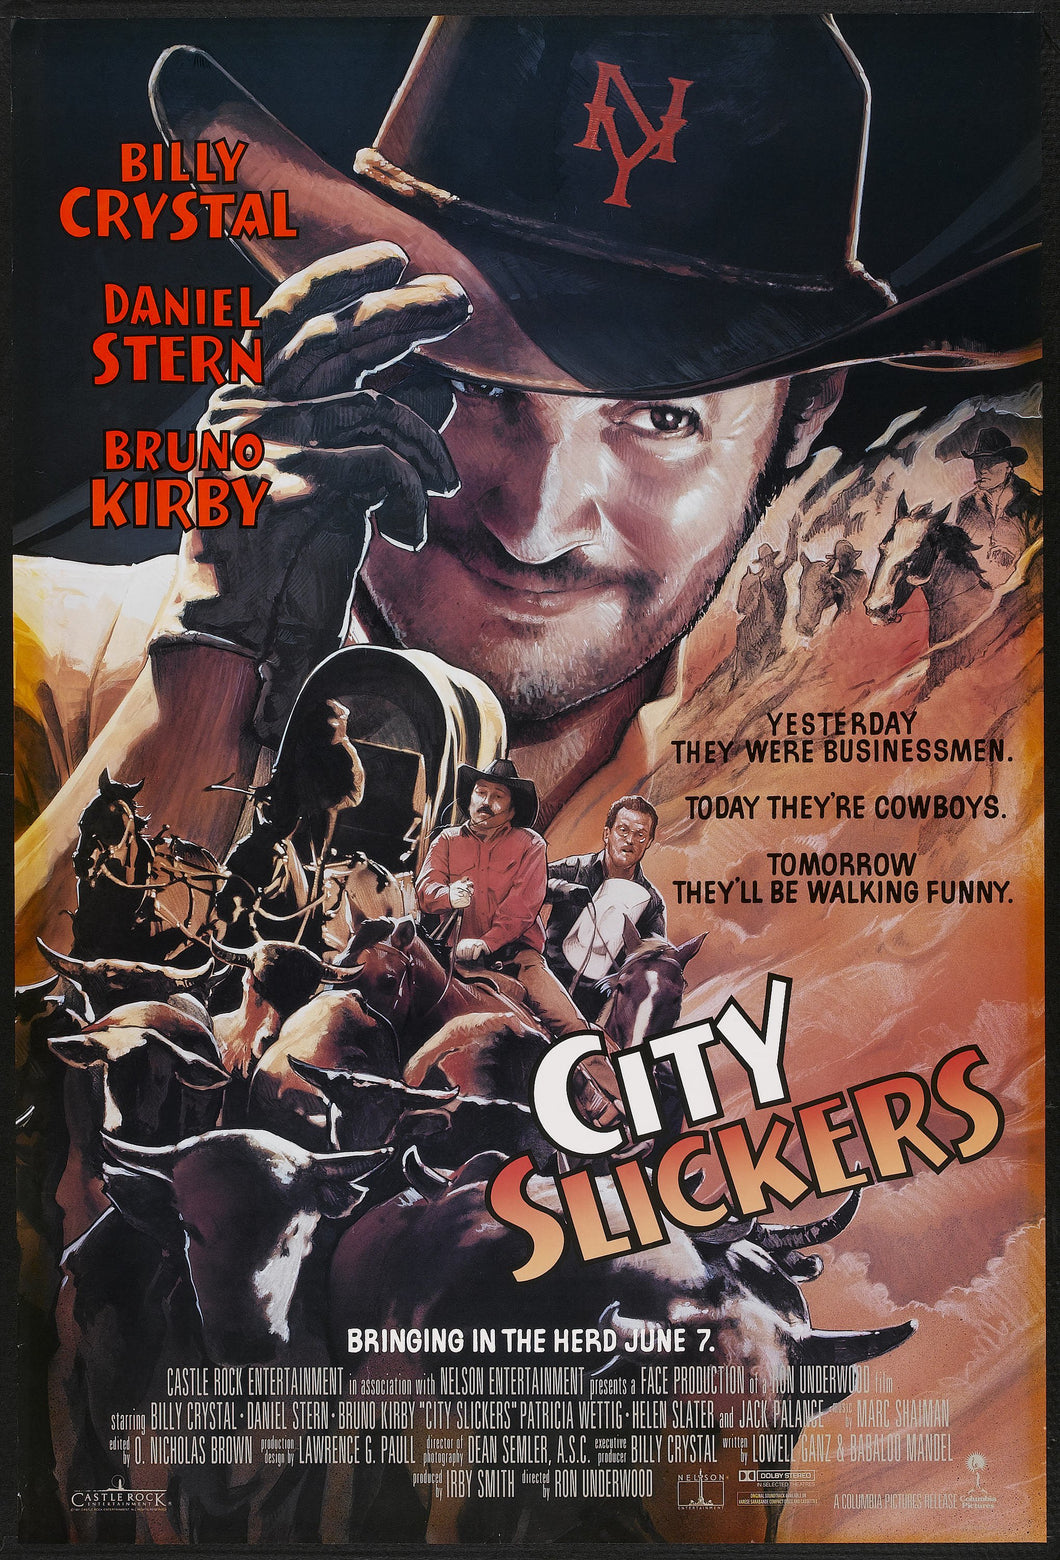 Daniel Stern - Signed City Slickers Image #7 (8x10, 11x17)